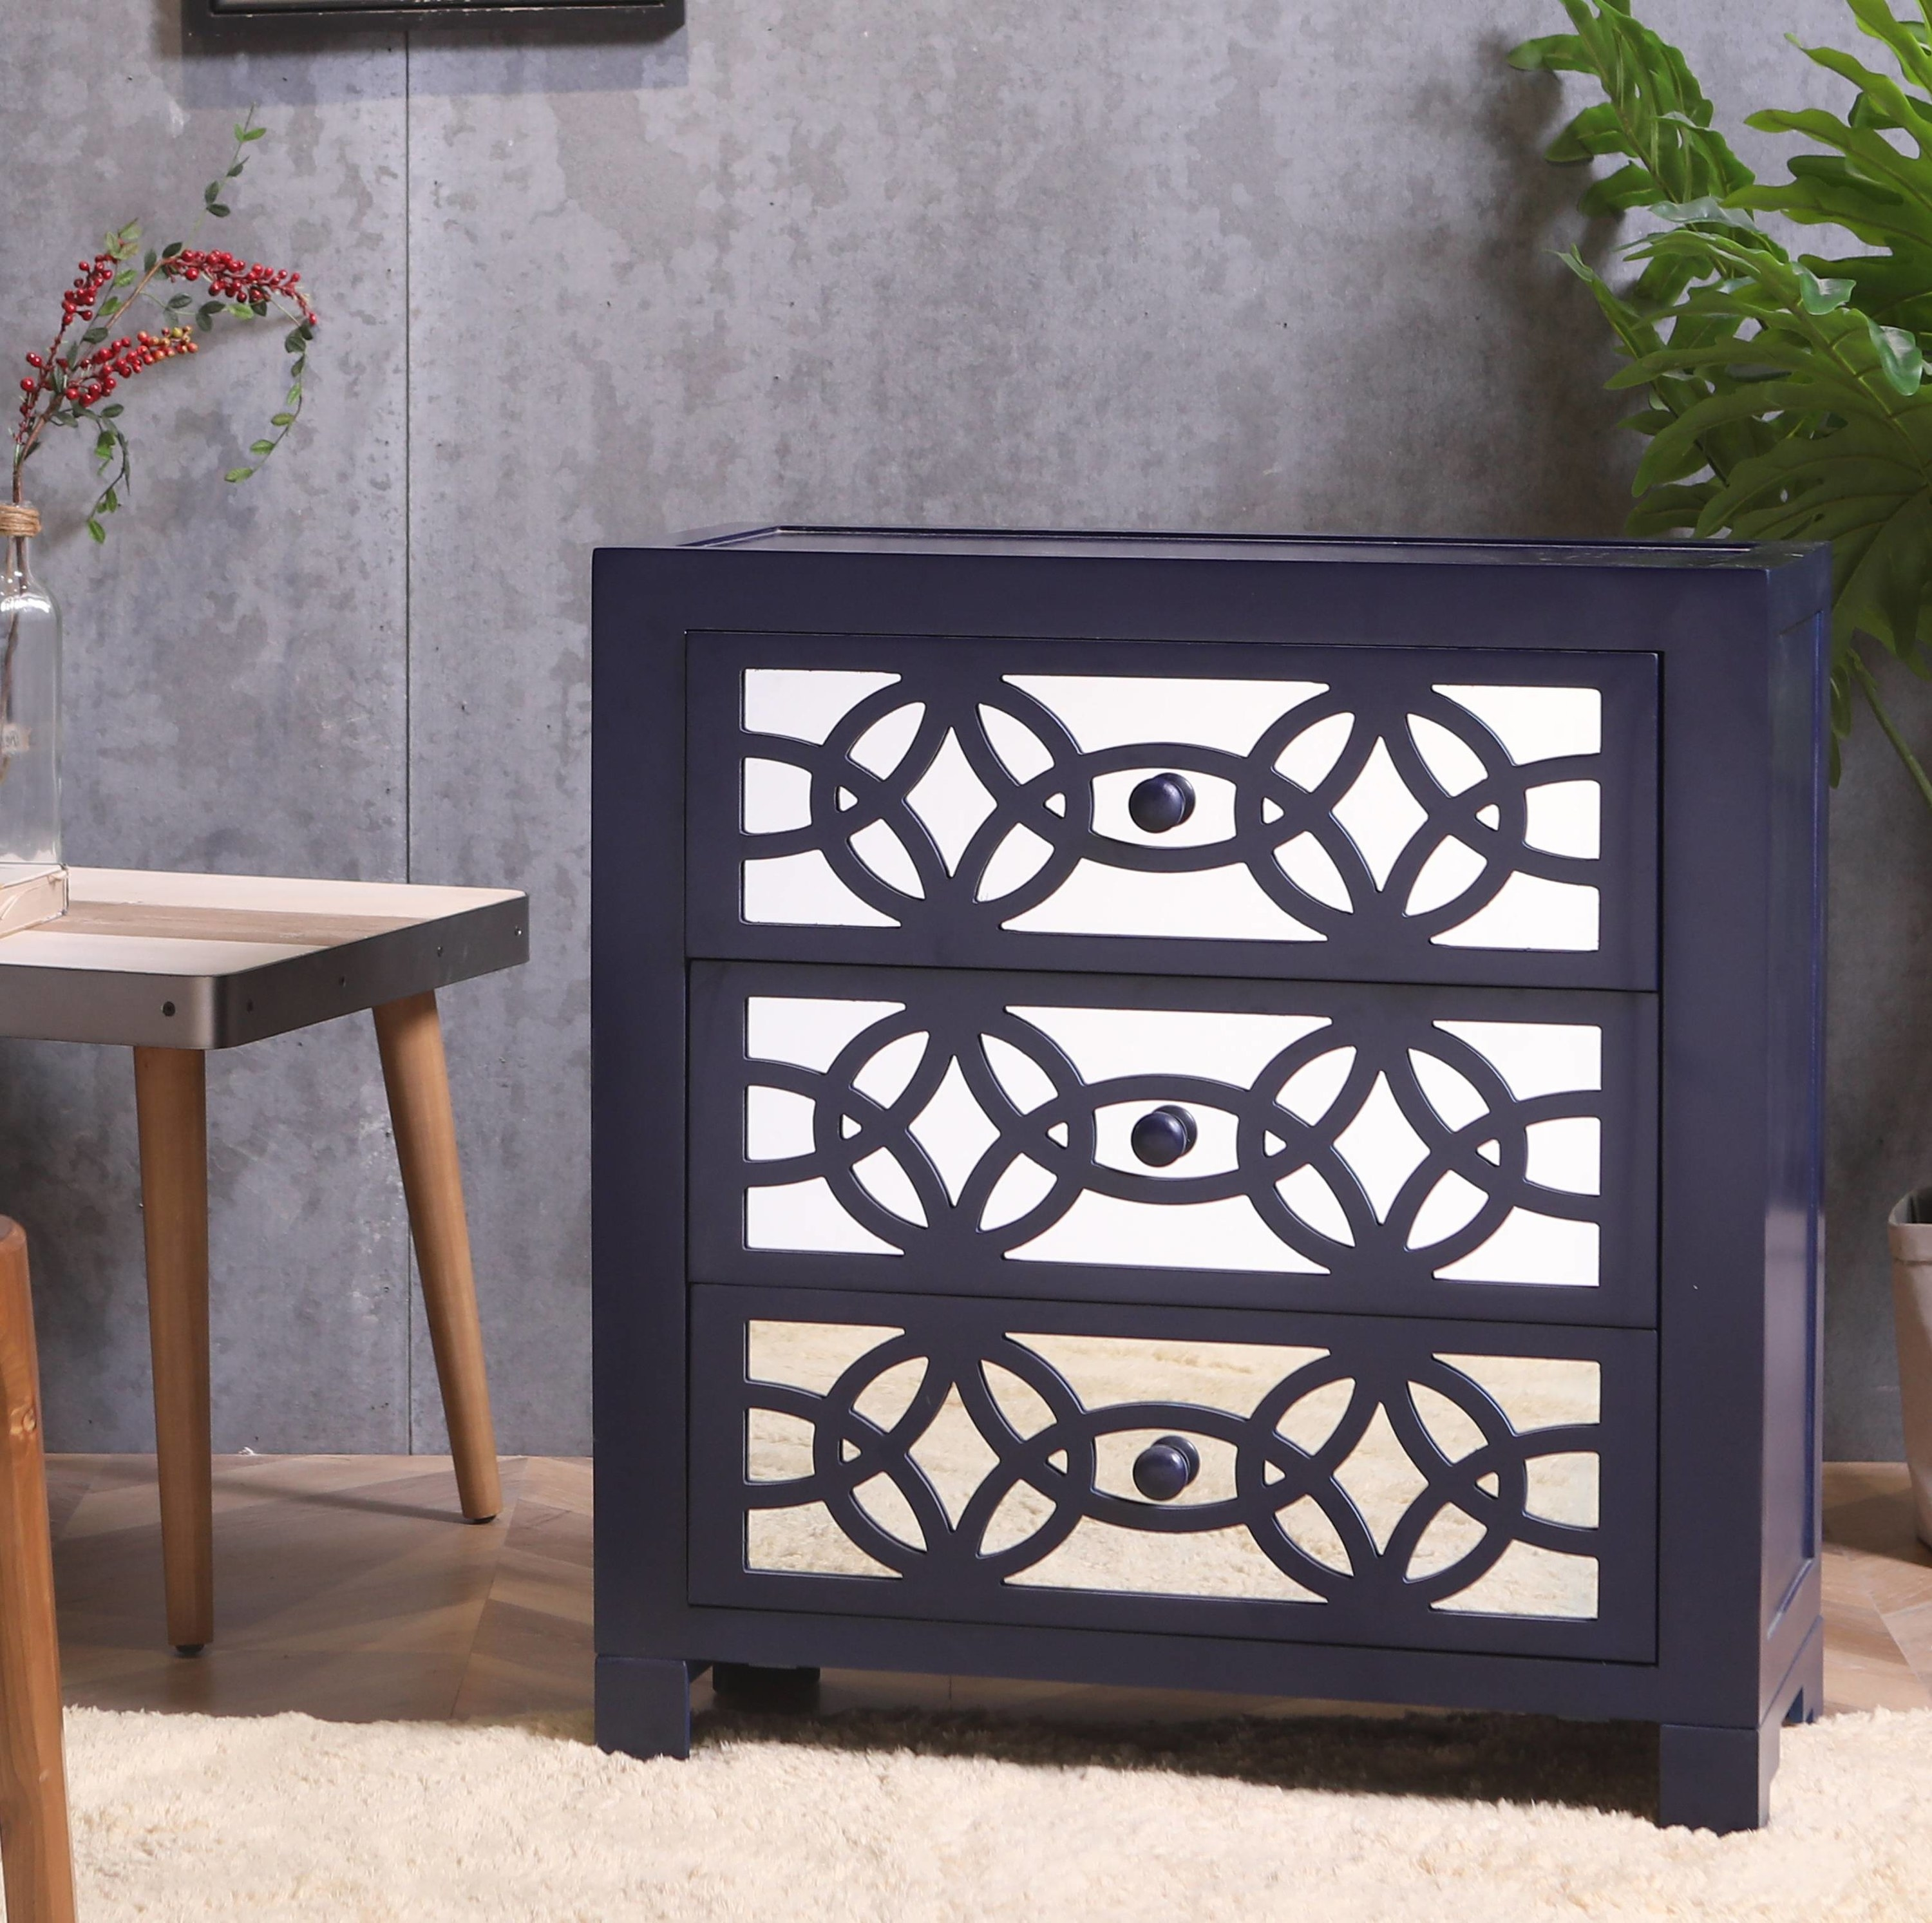 the mirrored cabinet with an intricate design across the three drawers